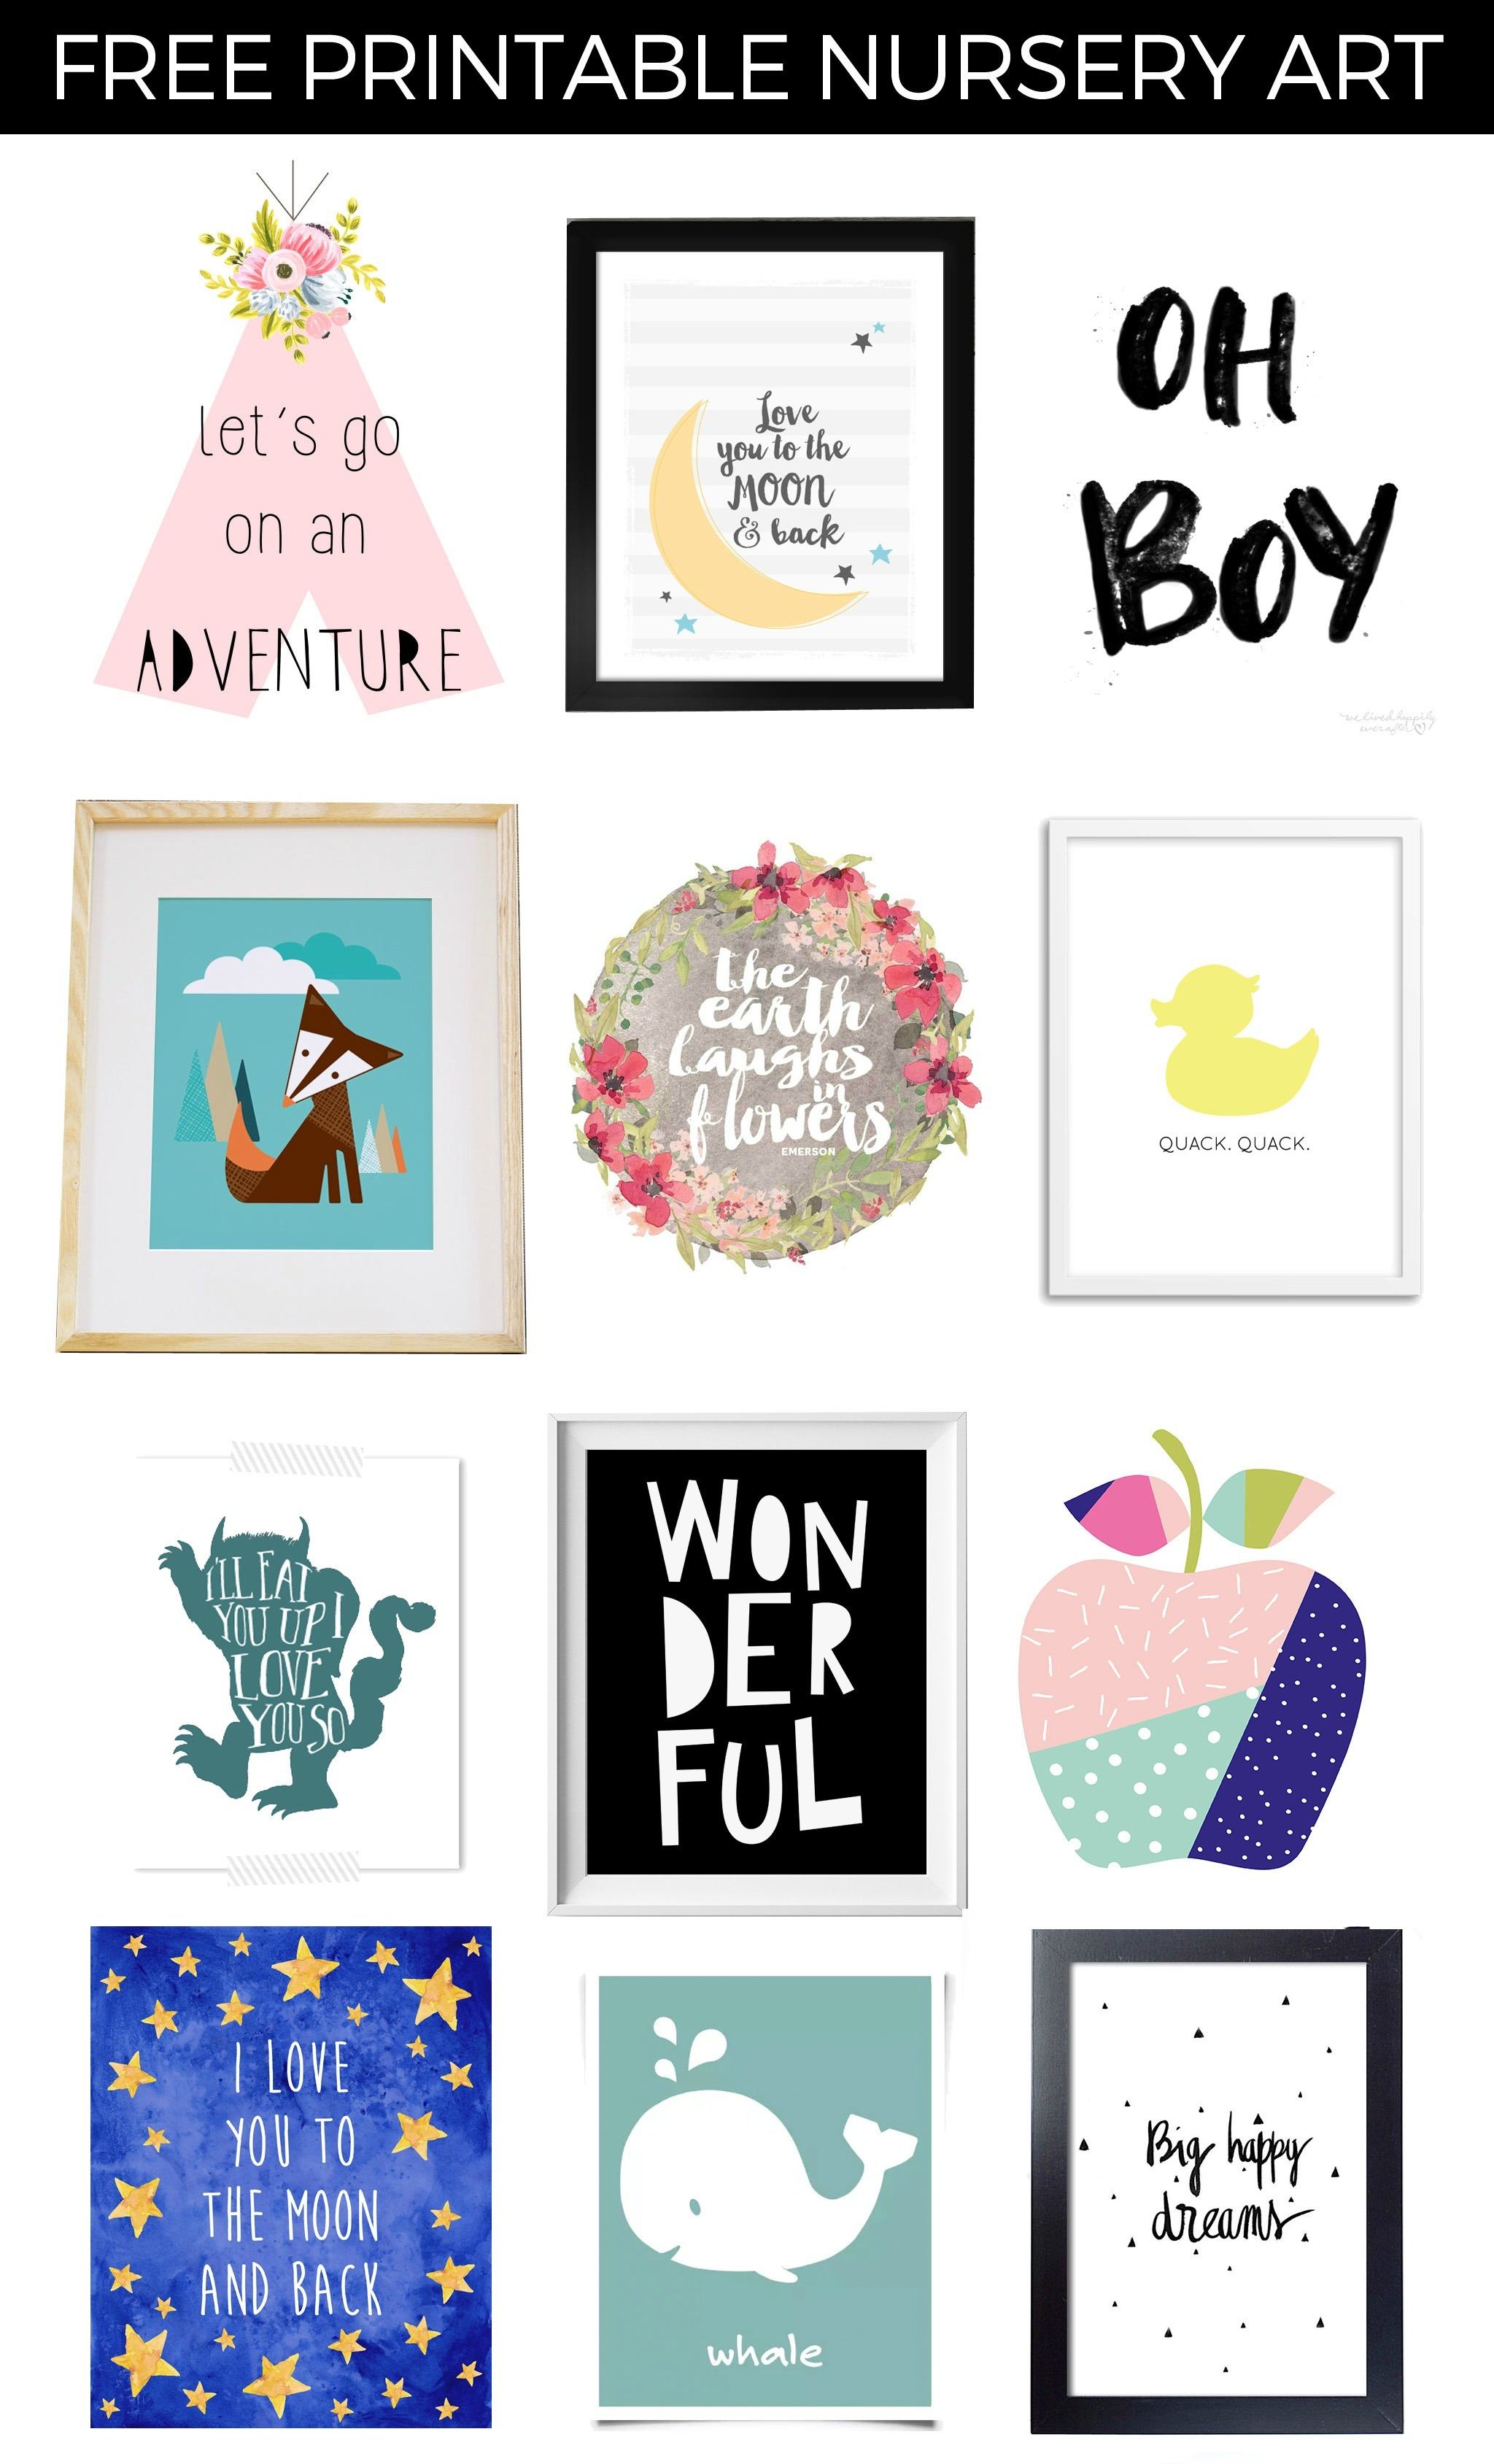 Free Printable Nursery Art - Project Nursery - Free Nursery Printables